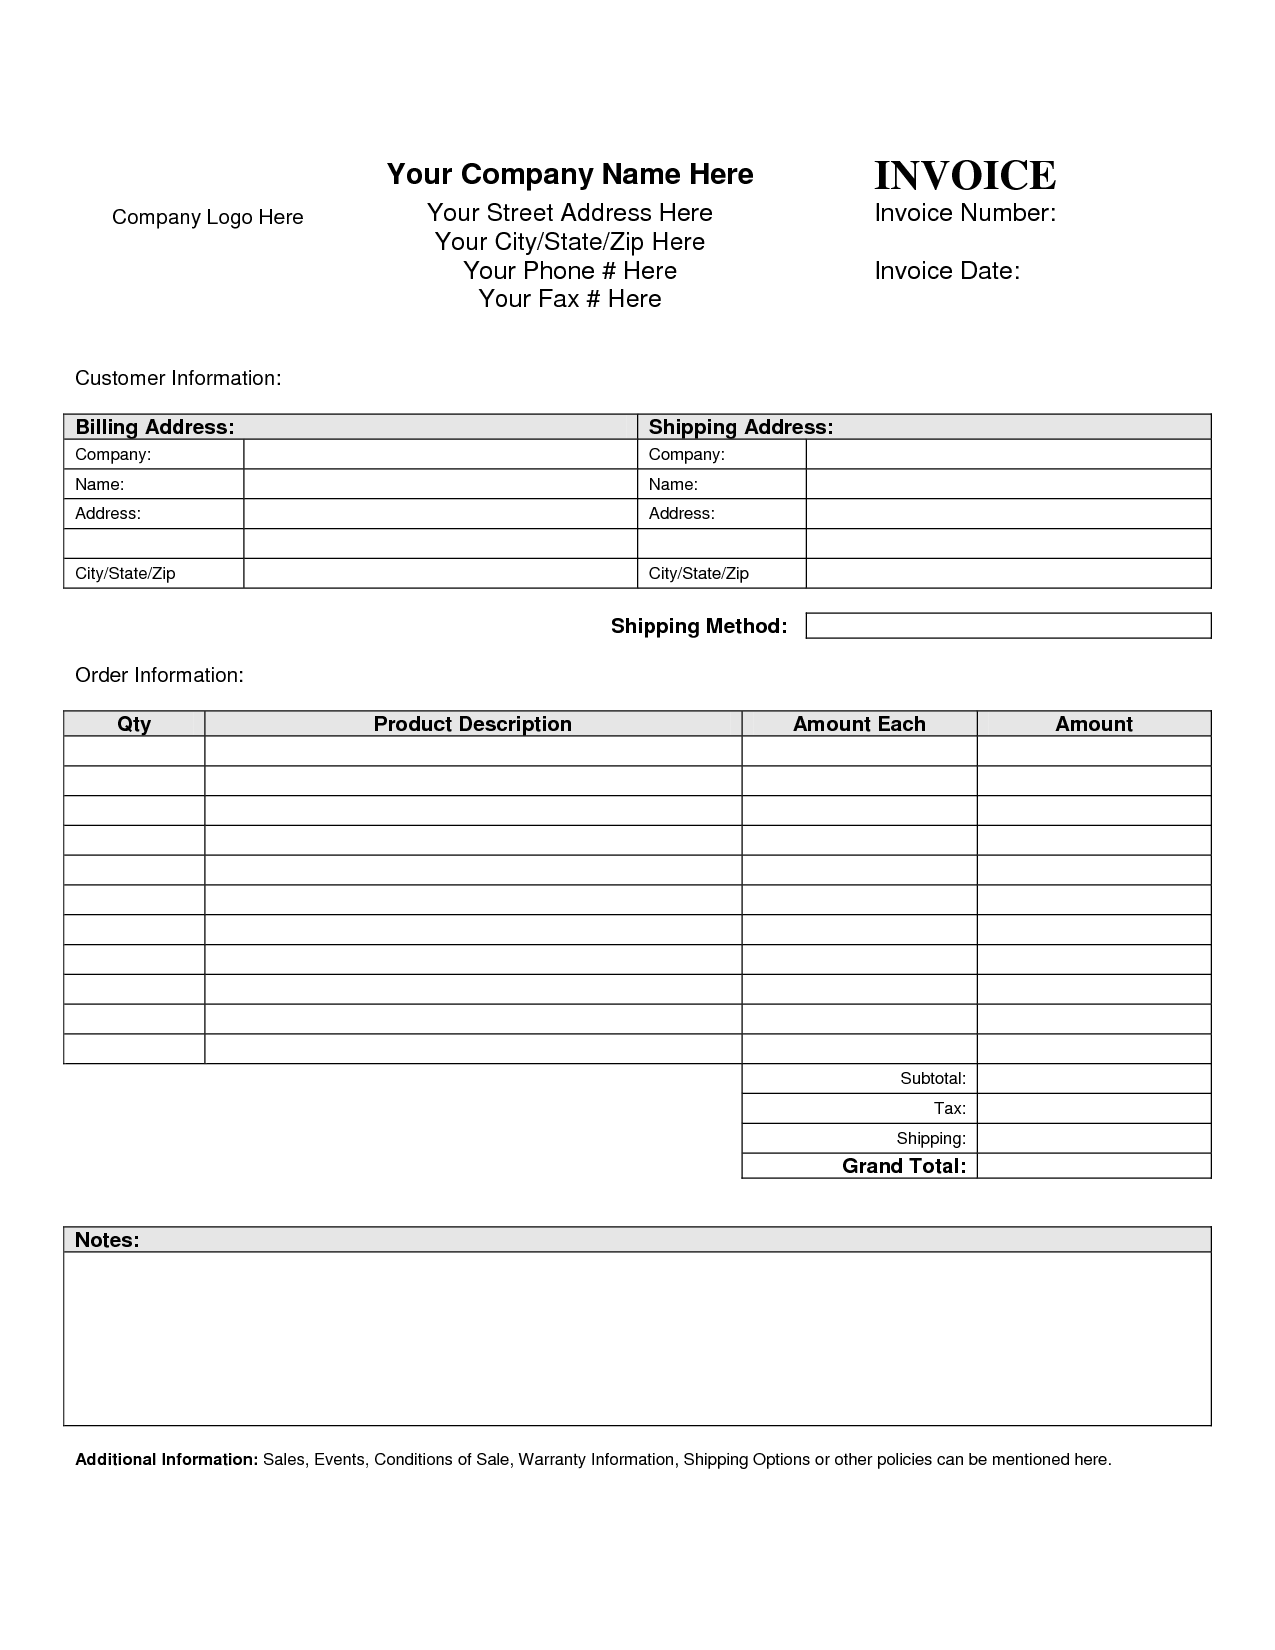 Blank Invoice Template U2013 50+ Documents In Word, U2026